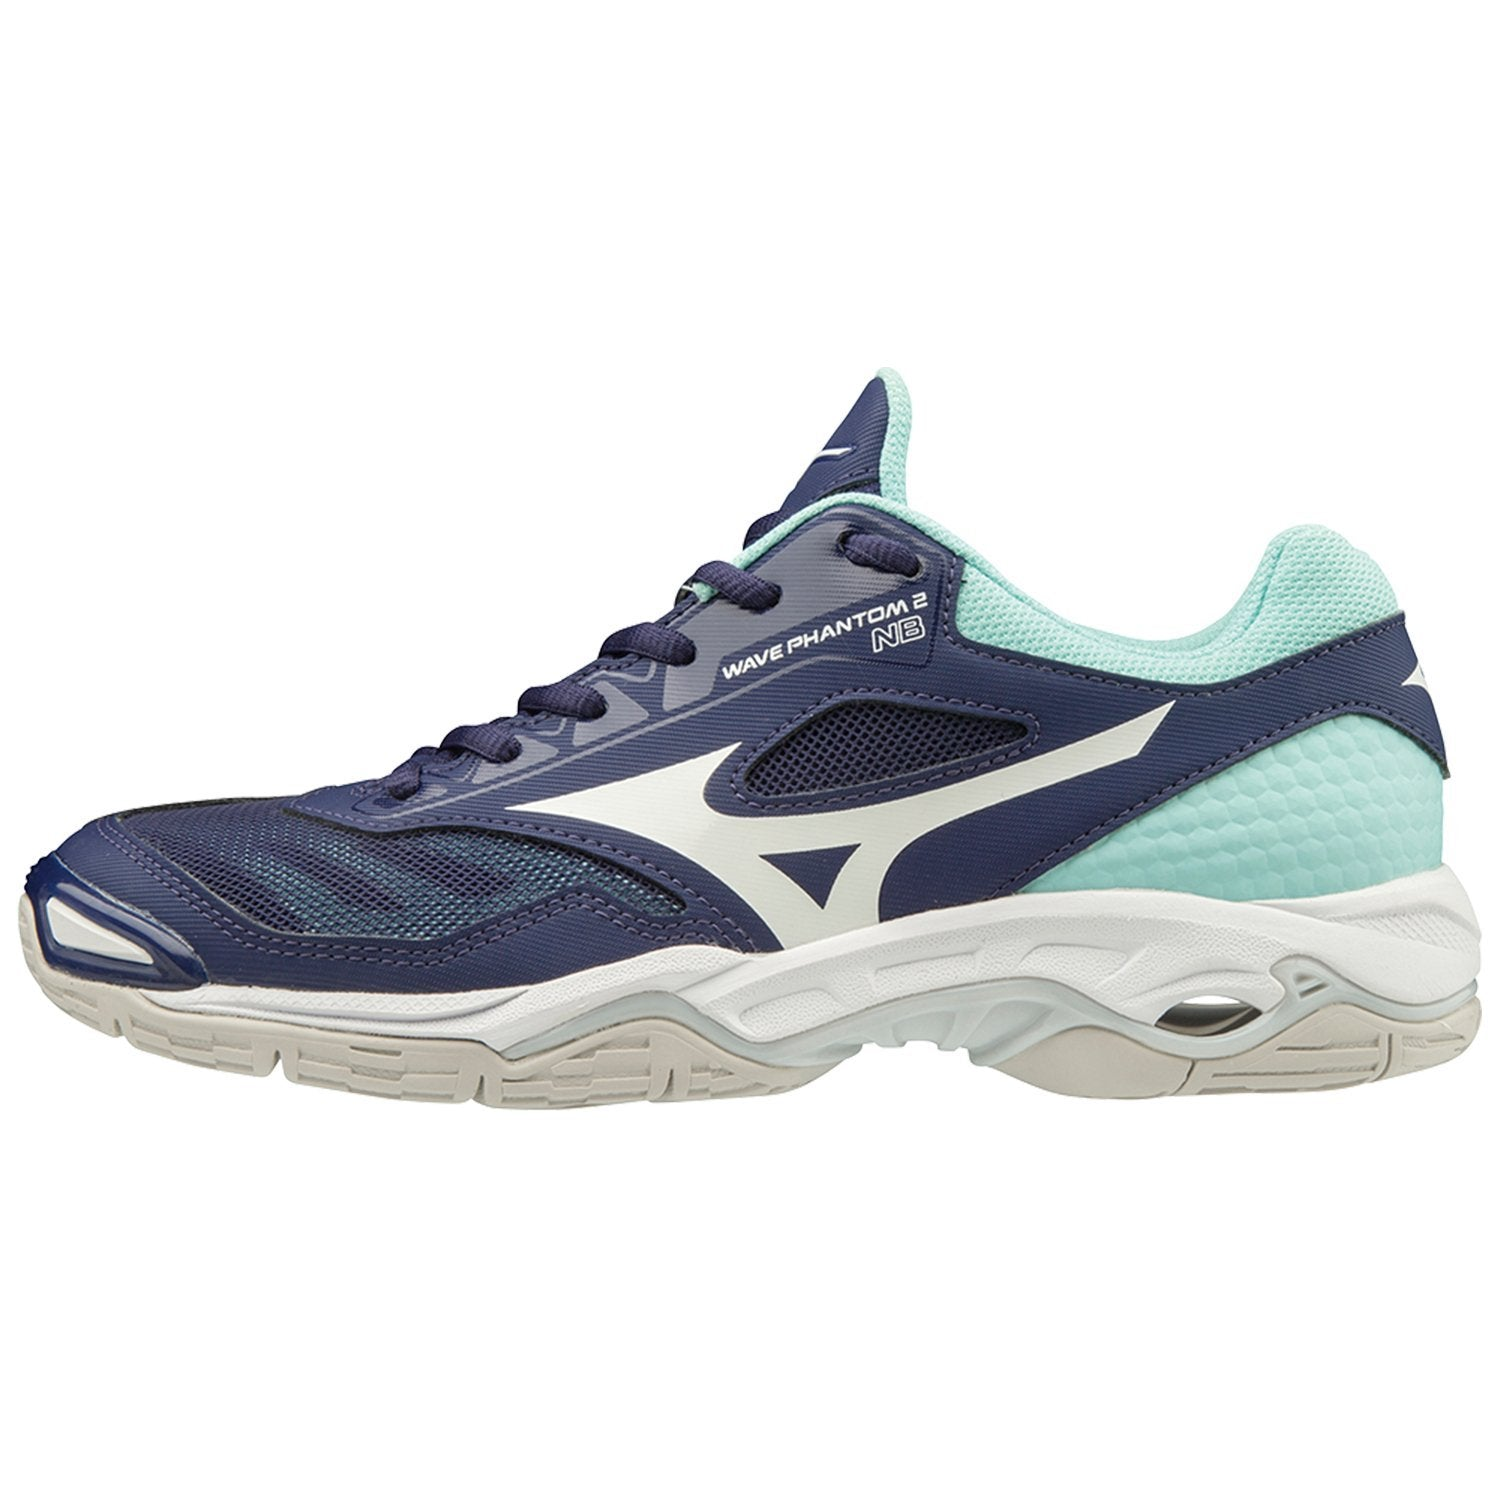 Mizuno Wave Phantom 2 NB